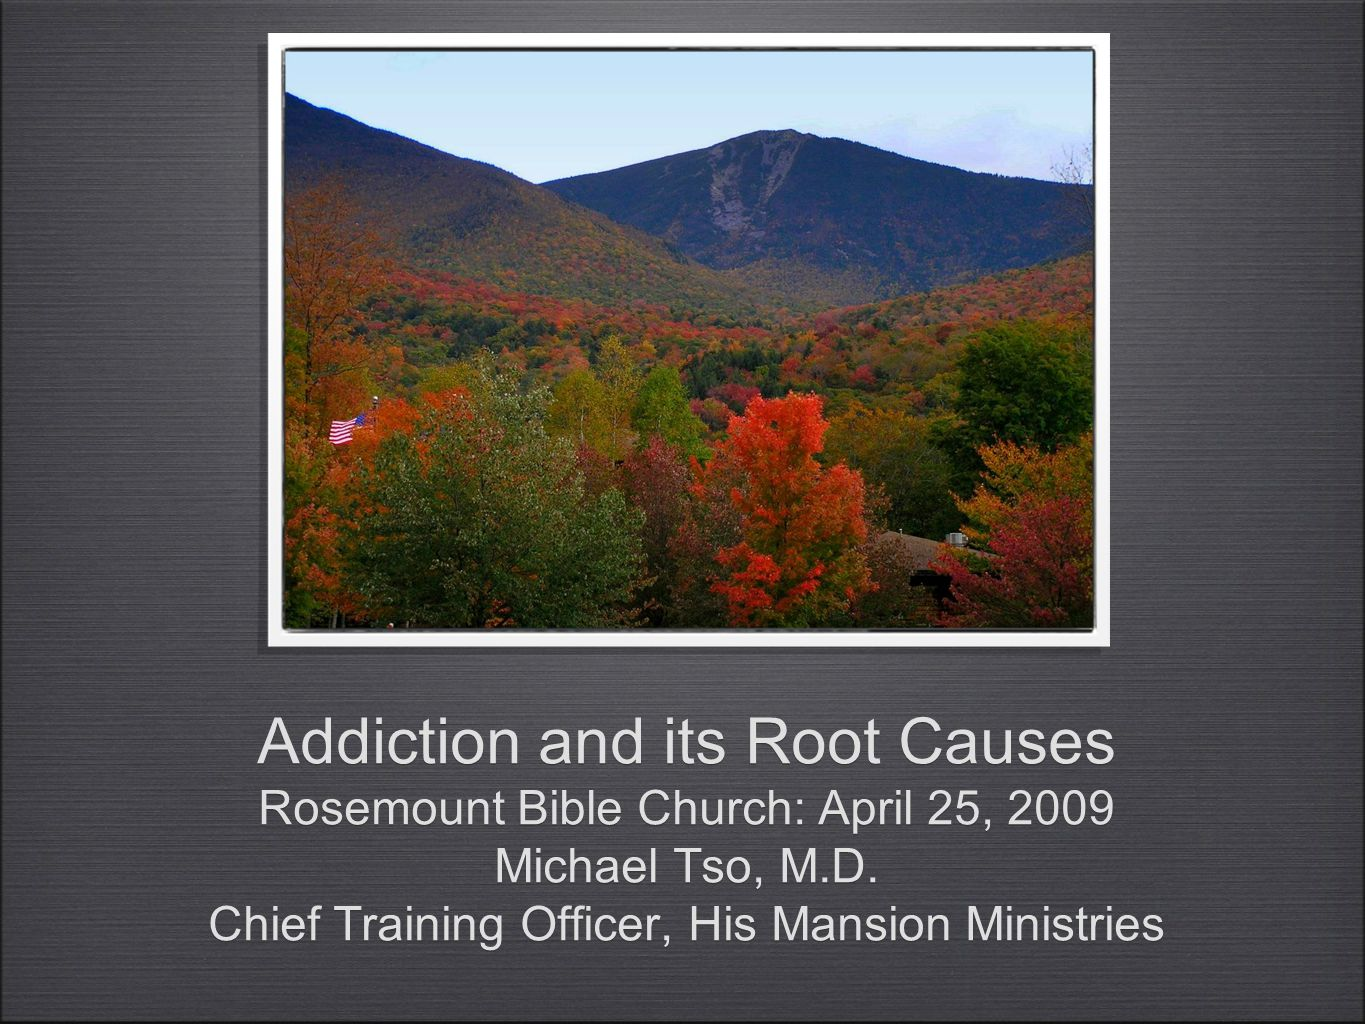 Addiction and its Root Causes Rosemount Bible Church: April 25, 2009 Michael Tso, M.D.